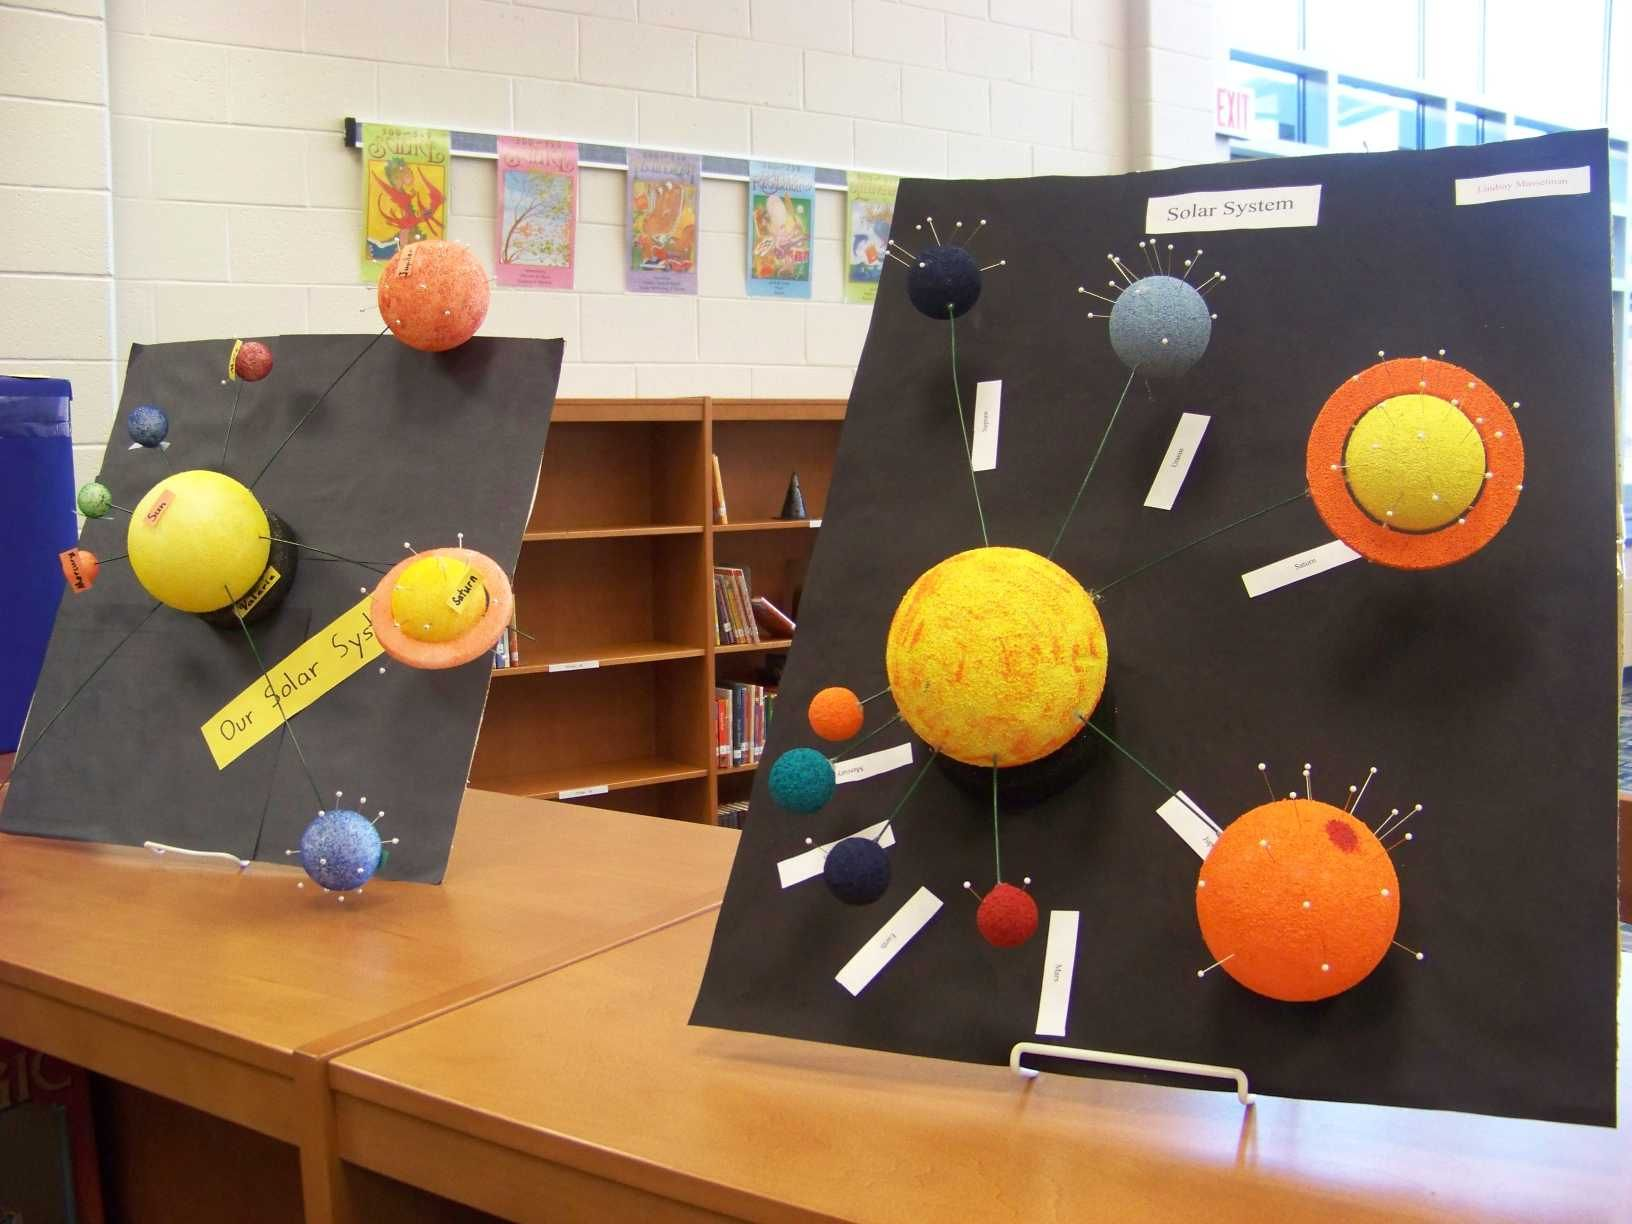 Solar System Projects For Kids 3rd Grade - 0425